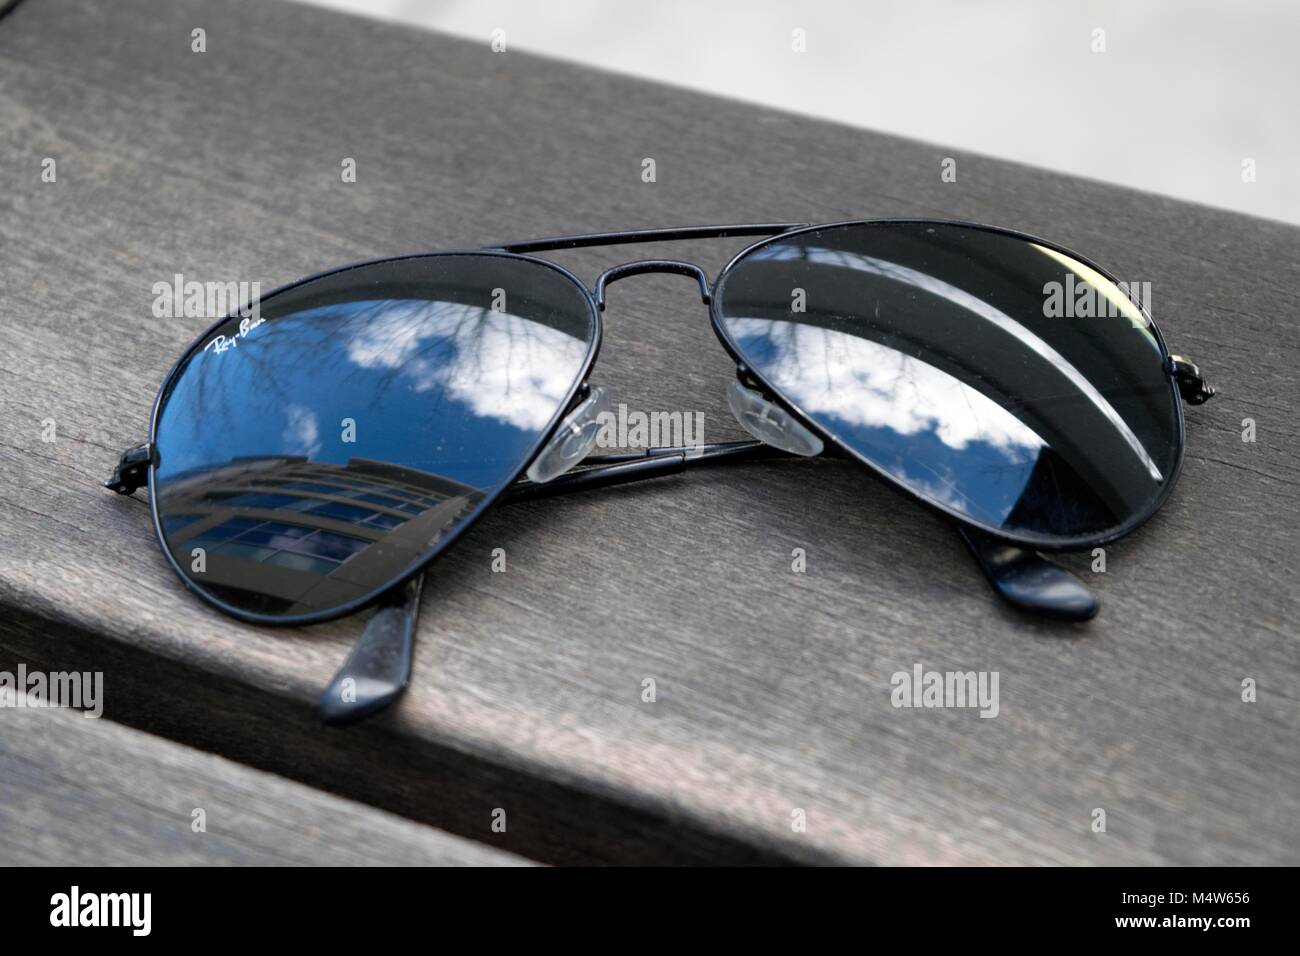 A pair of sunglasses rests on a table at a cafe. Stock Photo